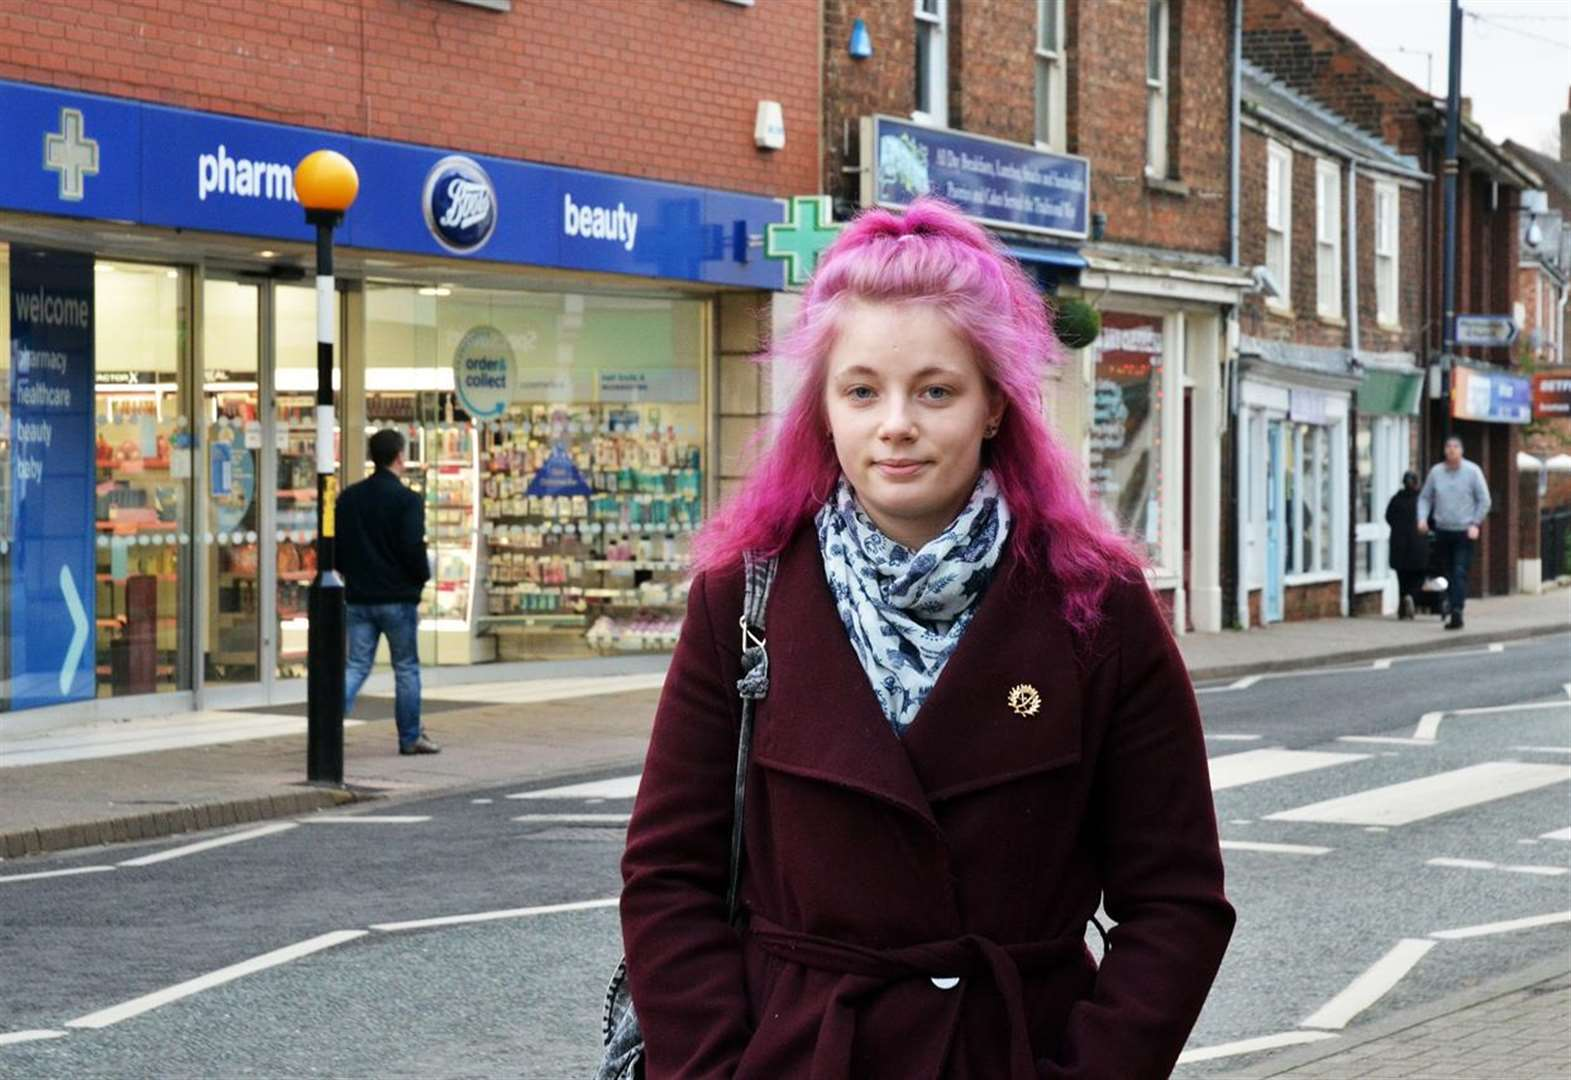 Young stateswoman Millie aims to 'make a difference' in Holbeach as new parish councillor